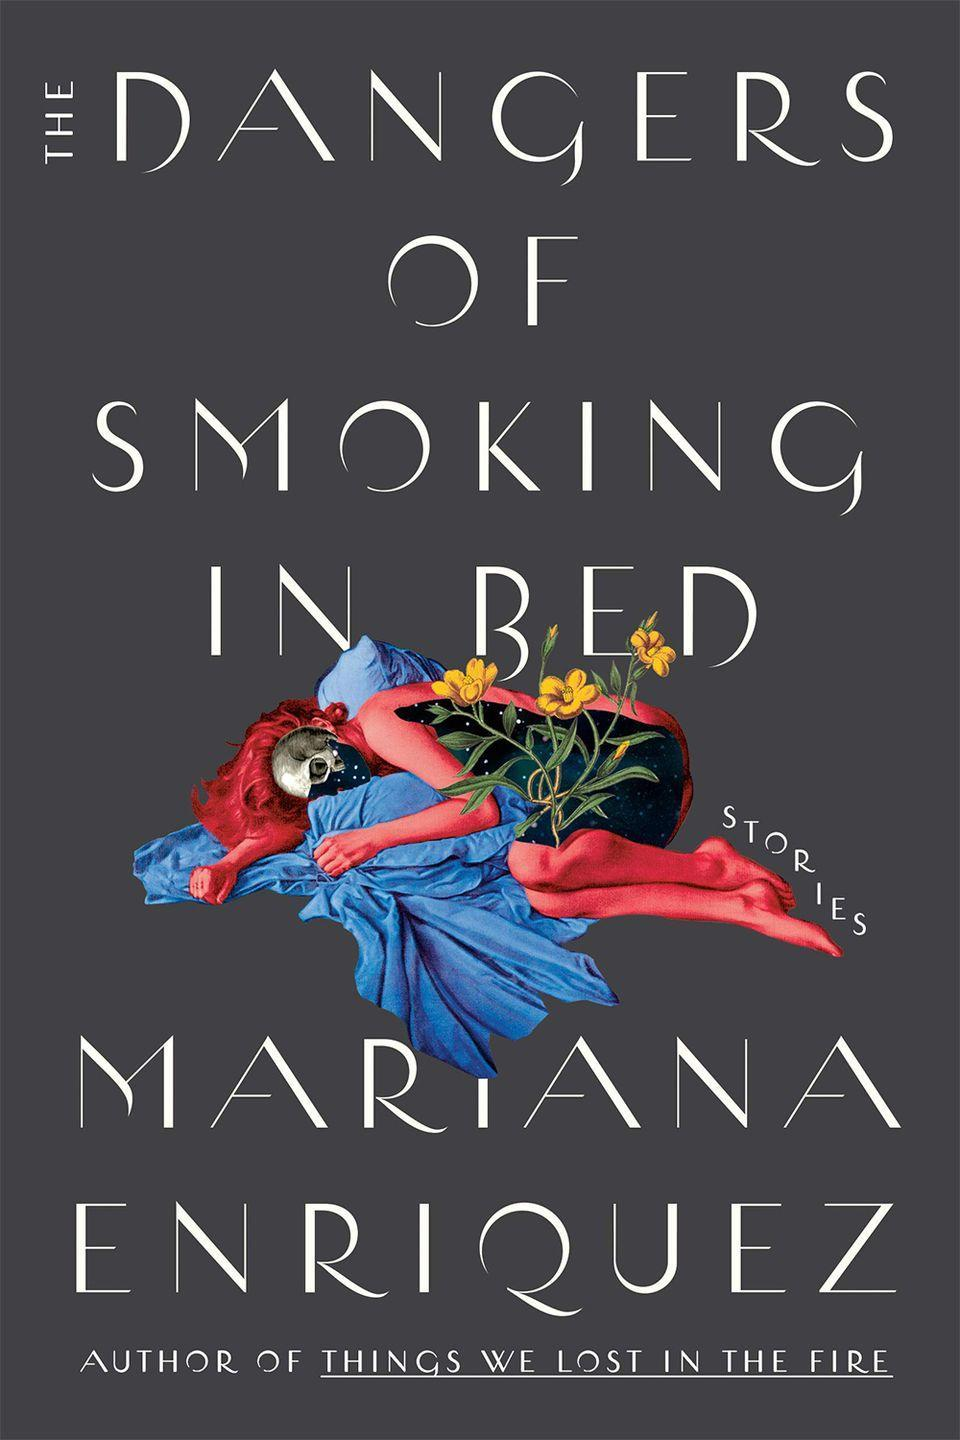 """<p>In Mariana Enriquez's latest collection, monsters walk among us—as do zombies, witches, and ravenous women. The result is a deliciously chilling patchwork of stories where our inner demons are made flesh and our worst decisions literally haunt our waking hours. Imagine Edgar Allan Poe as a disaffected elder millennial with a master's in gender studies.</p><p><a class=""""link rapid-noclick-resp"""" href=""""https://www.amazon.com/Dangers-Smoking-Bed-Stories/dp/0593134079/ref=sr_1_1?dchild=1&keywords=The+Dangers+of+Smoking+In+Bed&qid=1633017832&s=books&sr=1-1&tag=syn-yahoo-20&ascsubtag=%5Bartid%7C10056.g.37805016%5Bsrc%7Cyahoo-us"""" rel=""""nofollow noopener"""" target=""""_blank"""" data-ylk=""""slk:BUY NOW""""> BUY NOW</a><br></p>"""